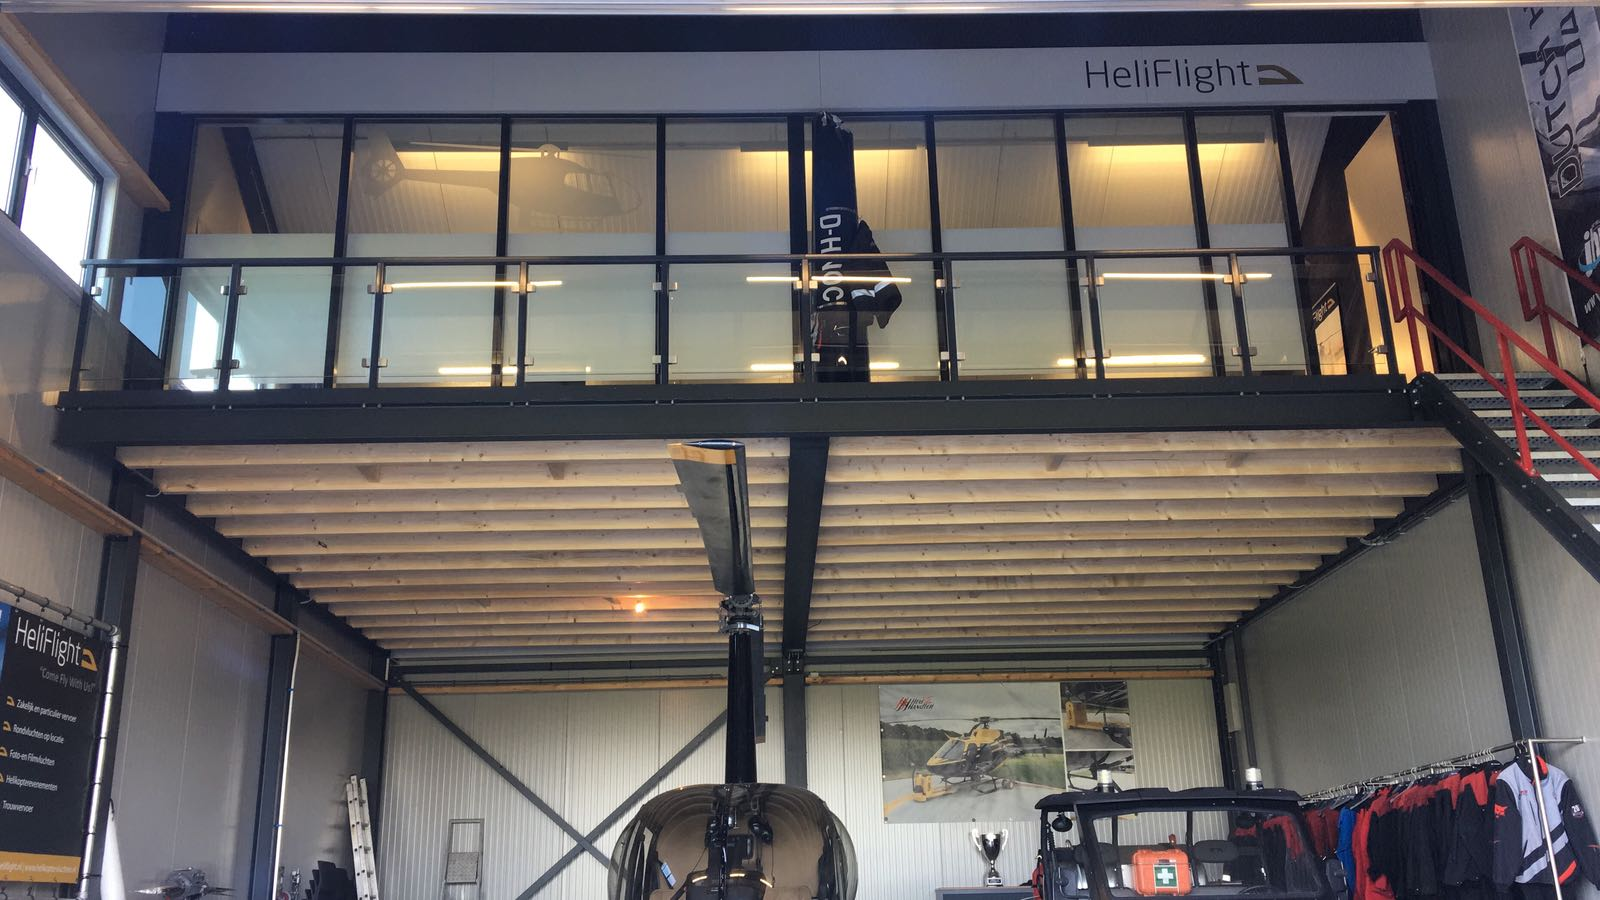 HeliFlight Office